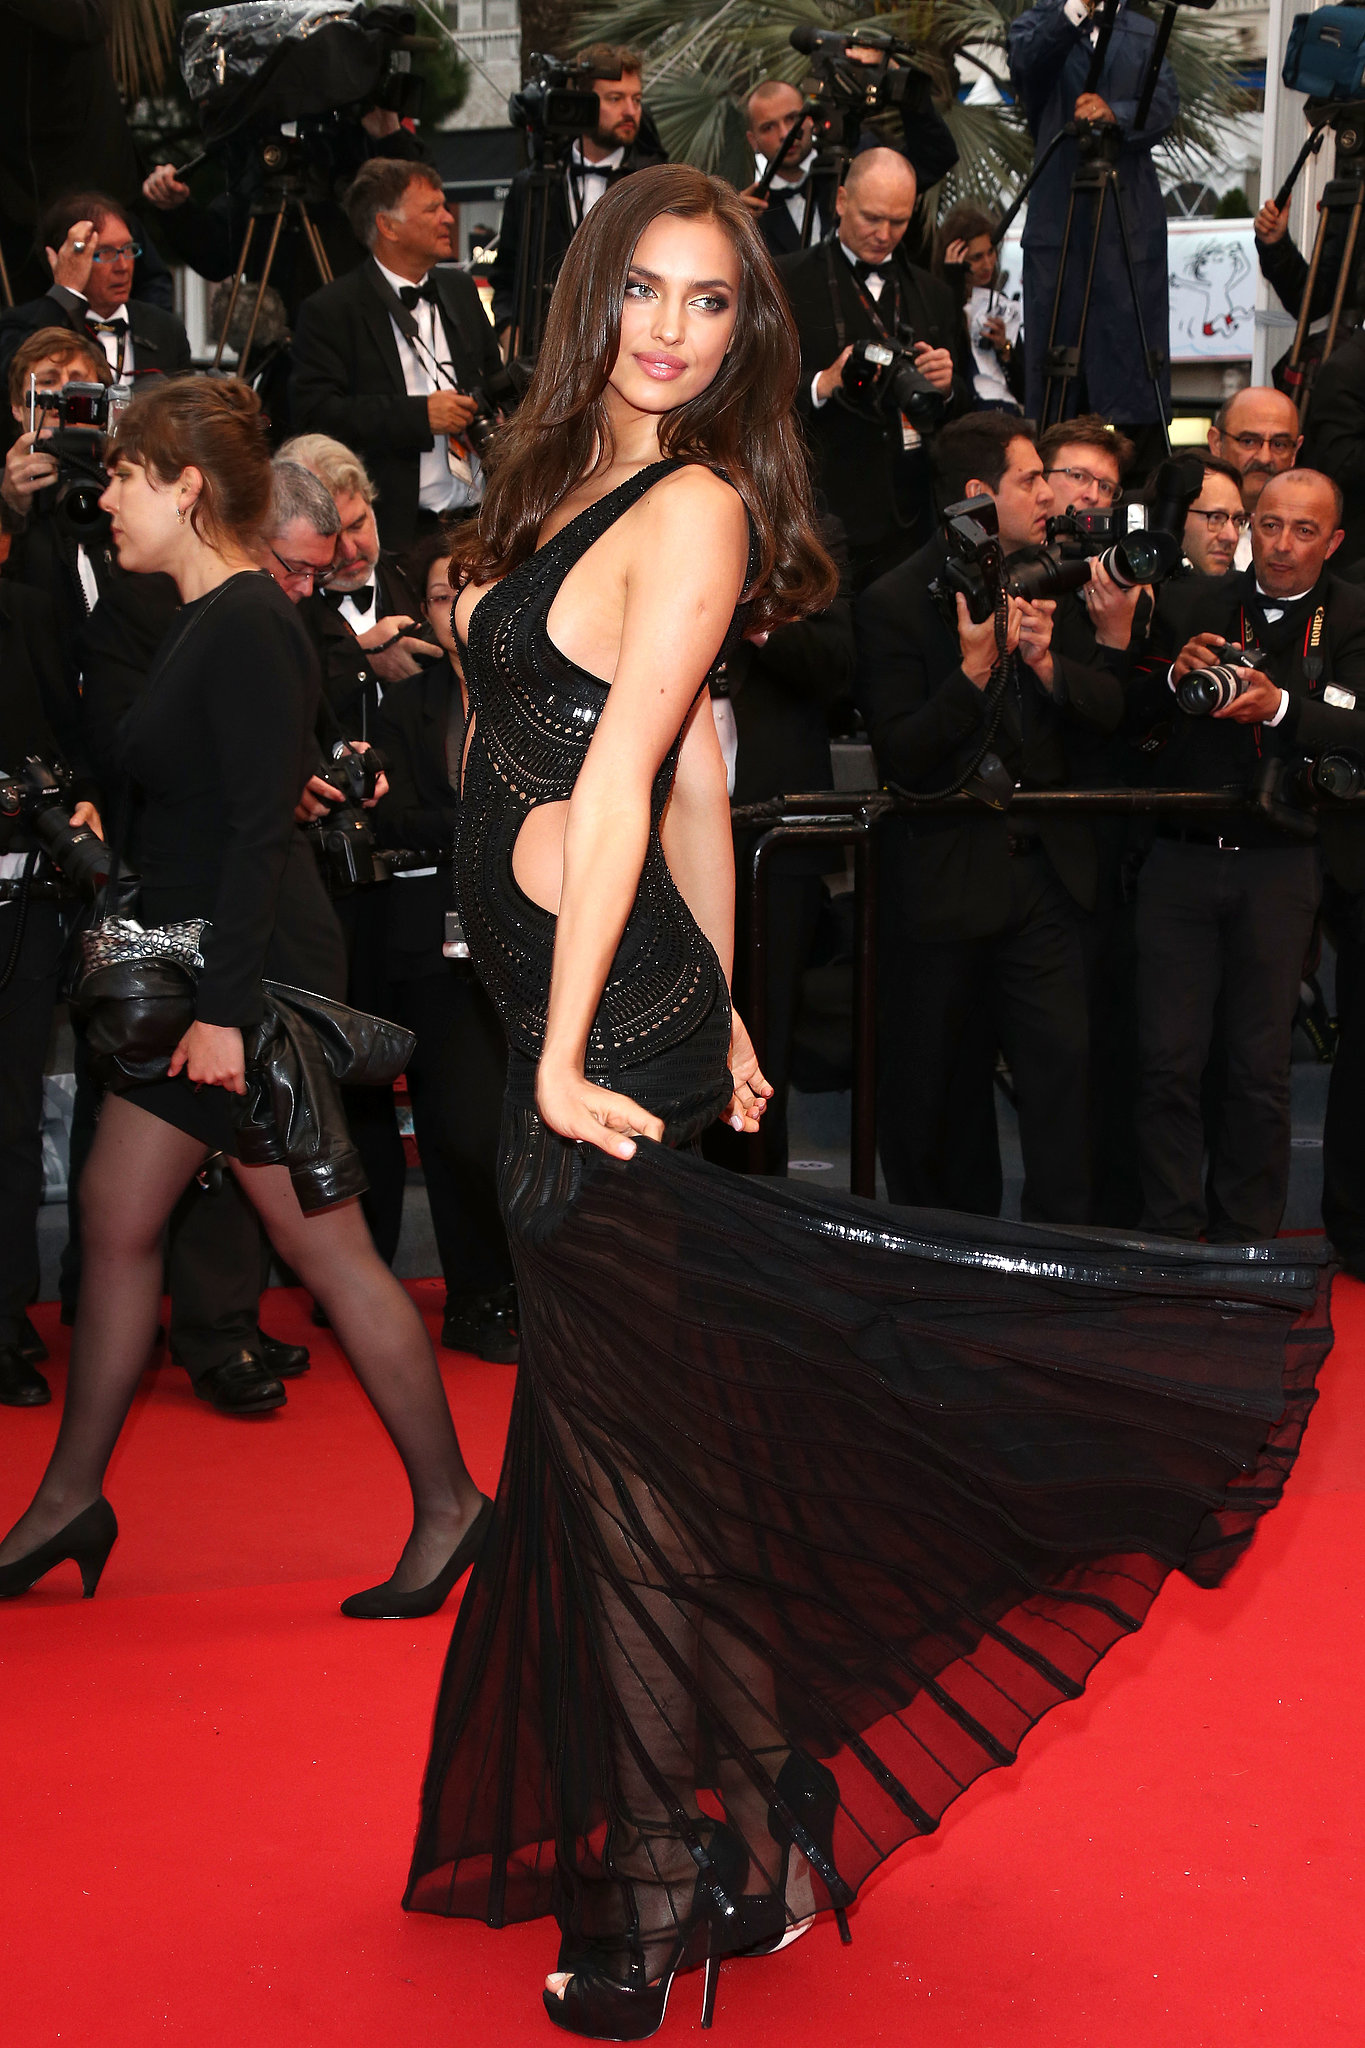 Irina Shayk flipped her dress on the red carpet on Wednesday for the All Is Lost premiere.